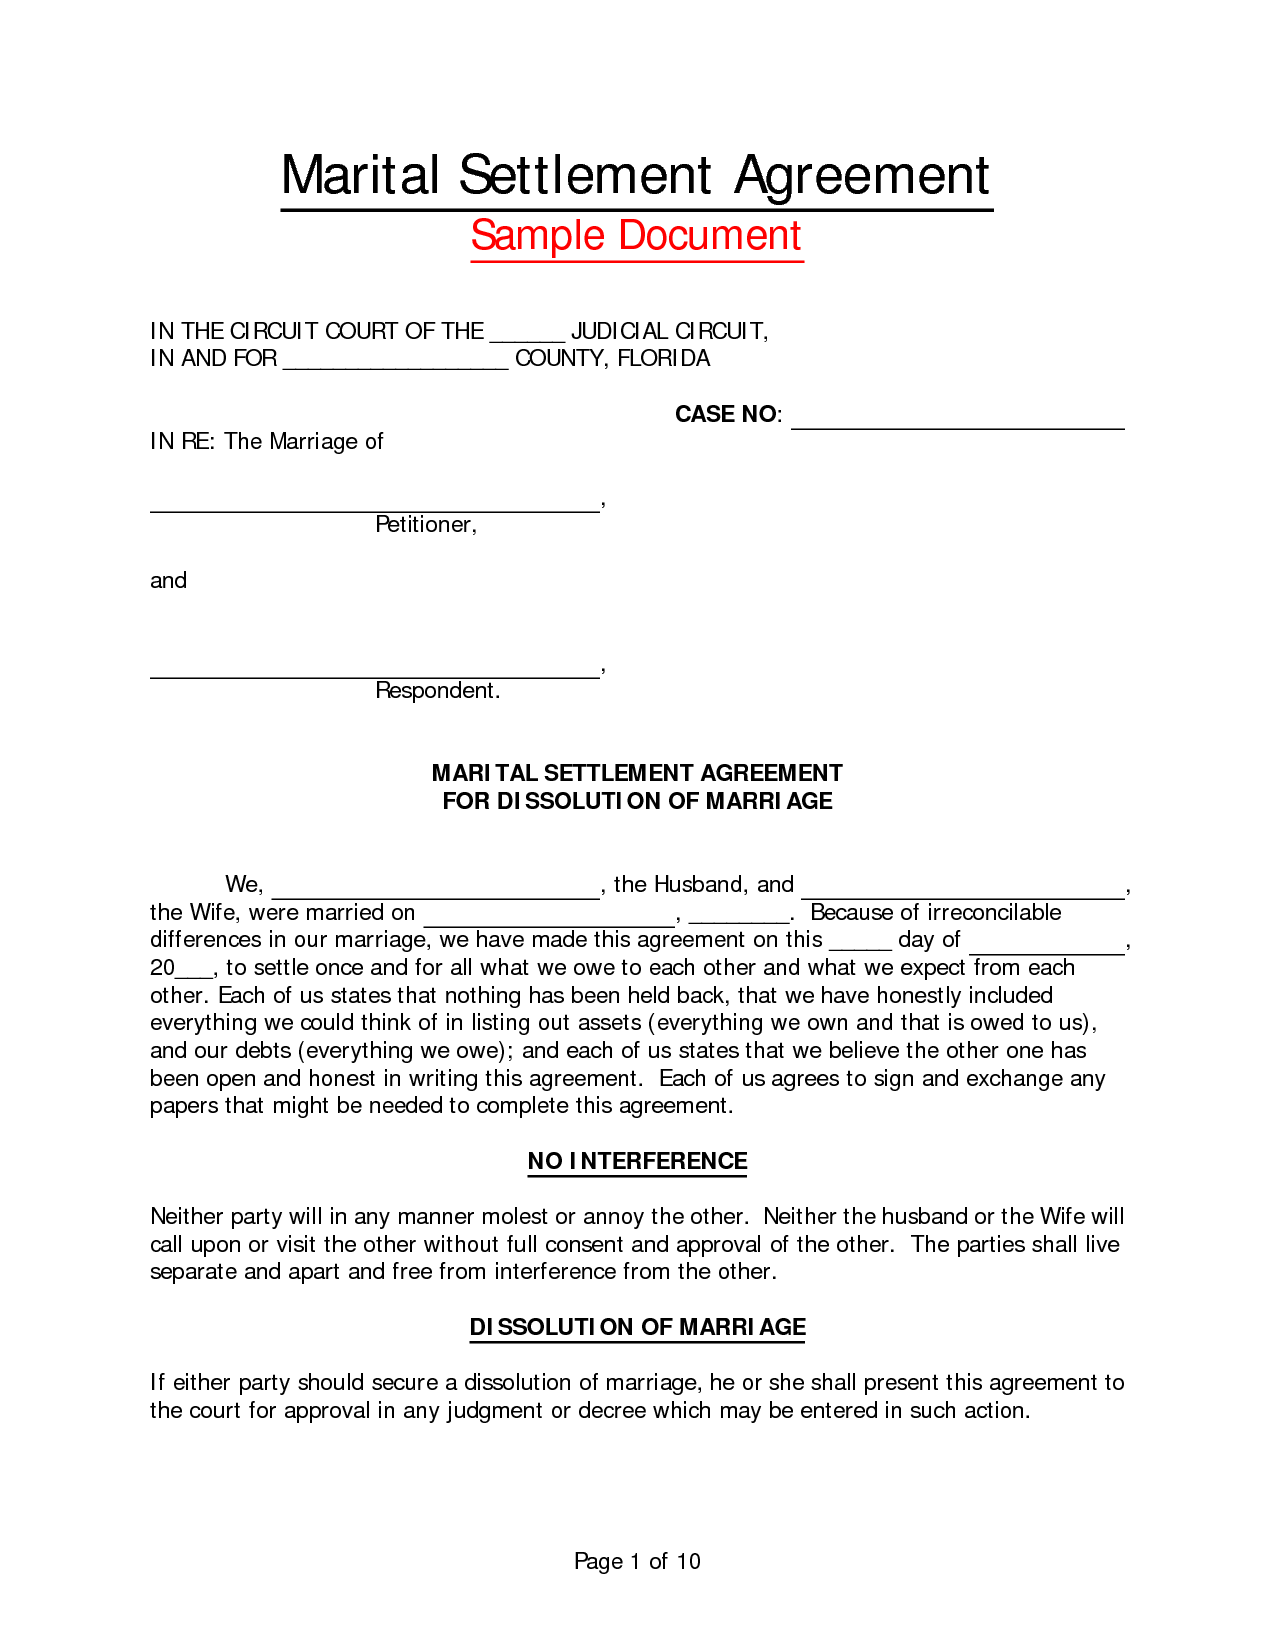 Legal Separation Agreement Sample Philippines